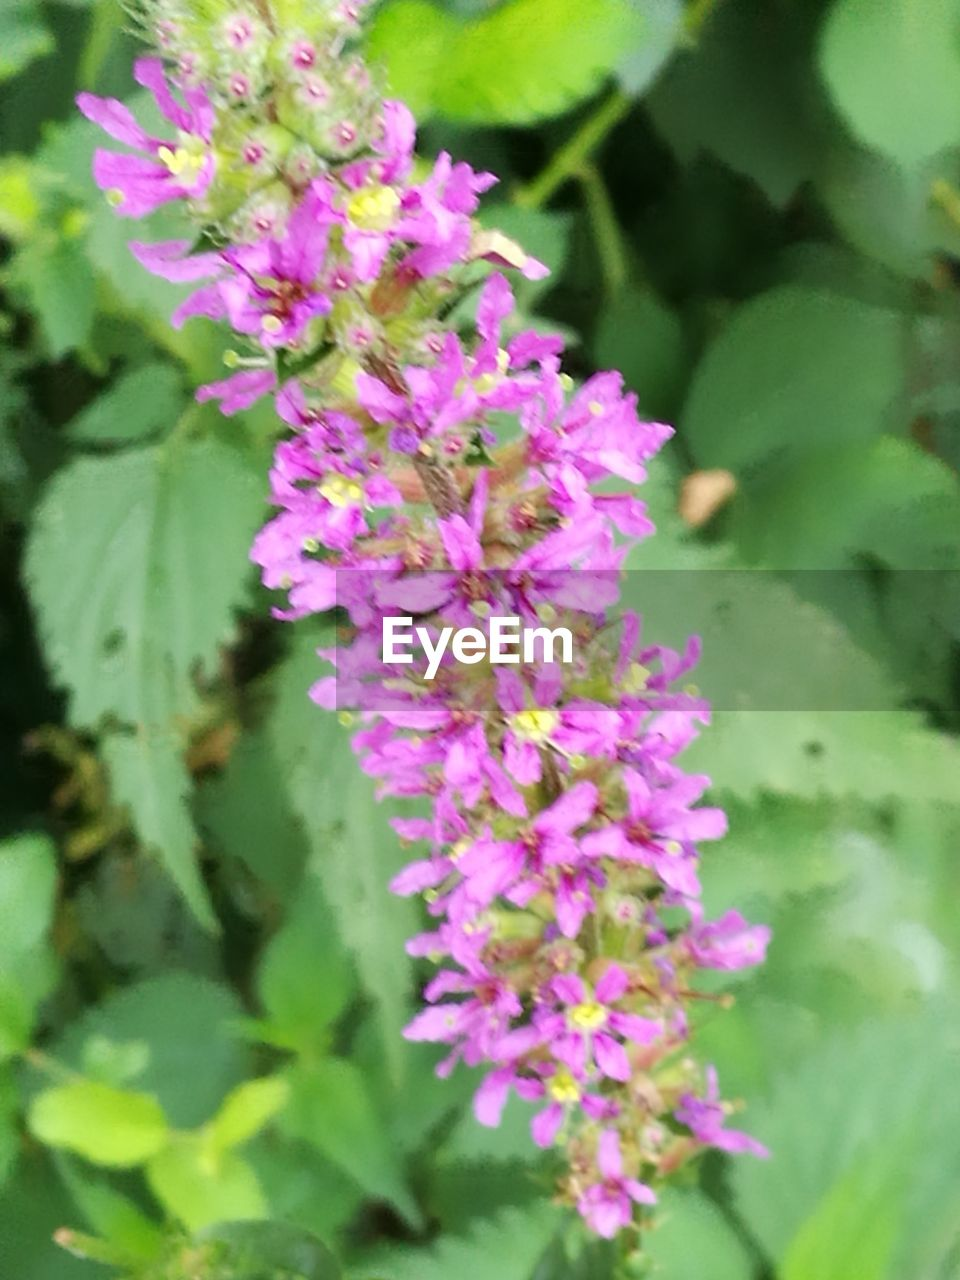 flower, flowering plant, plant, beauty in nature, freshness, vulnerability, fragility, growth, pink color, petal, close-up, nature, inflorescence, flower head, day, plant part, leaf, purple, no people, botany, outdoors, lilac